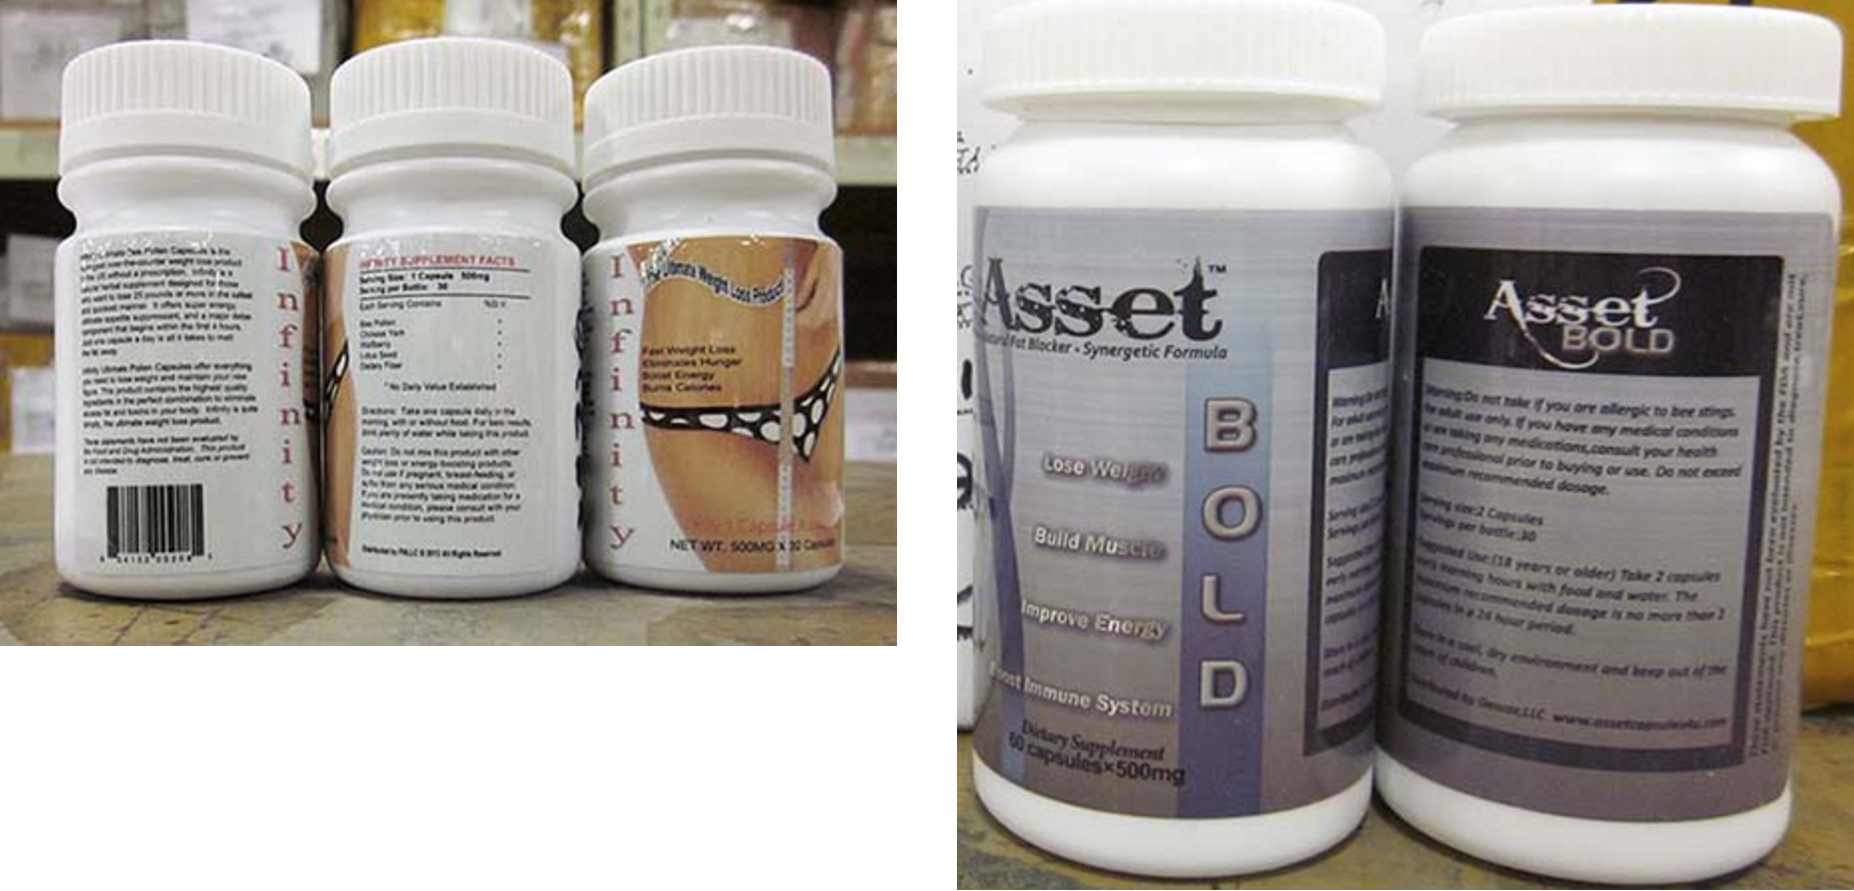 fda recalls several weight loss supplements containing unsafe